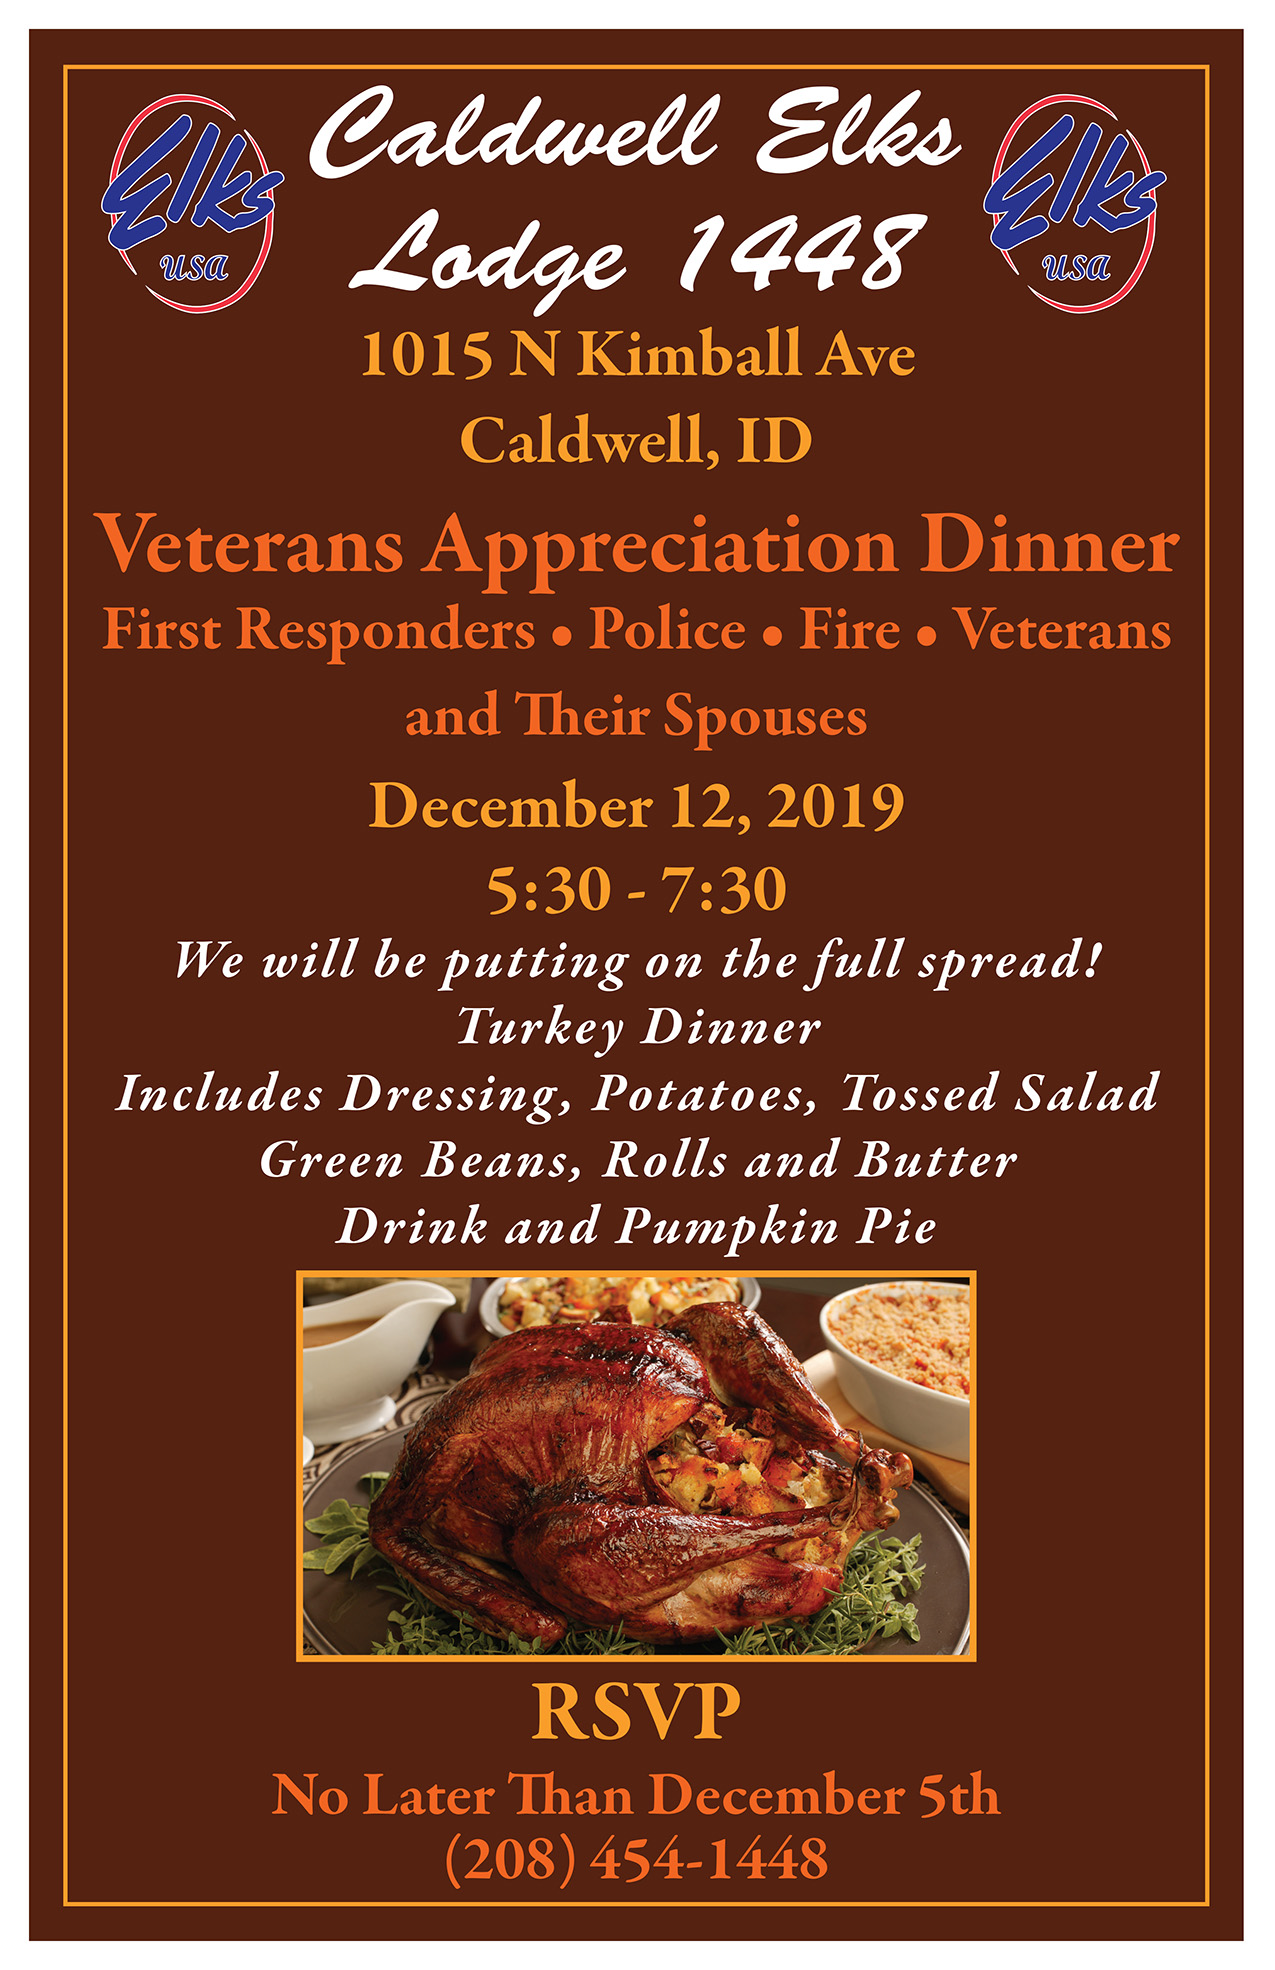 Veterans, First Responders, Police, Fire Appreciation Dinner